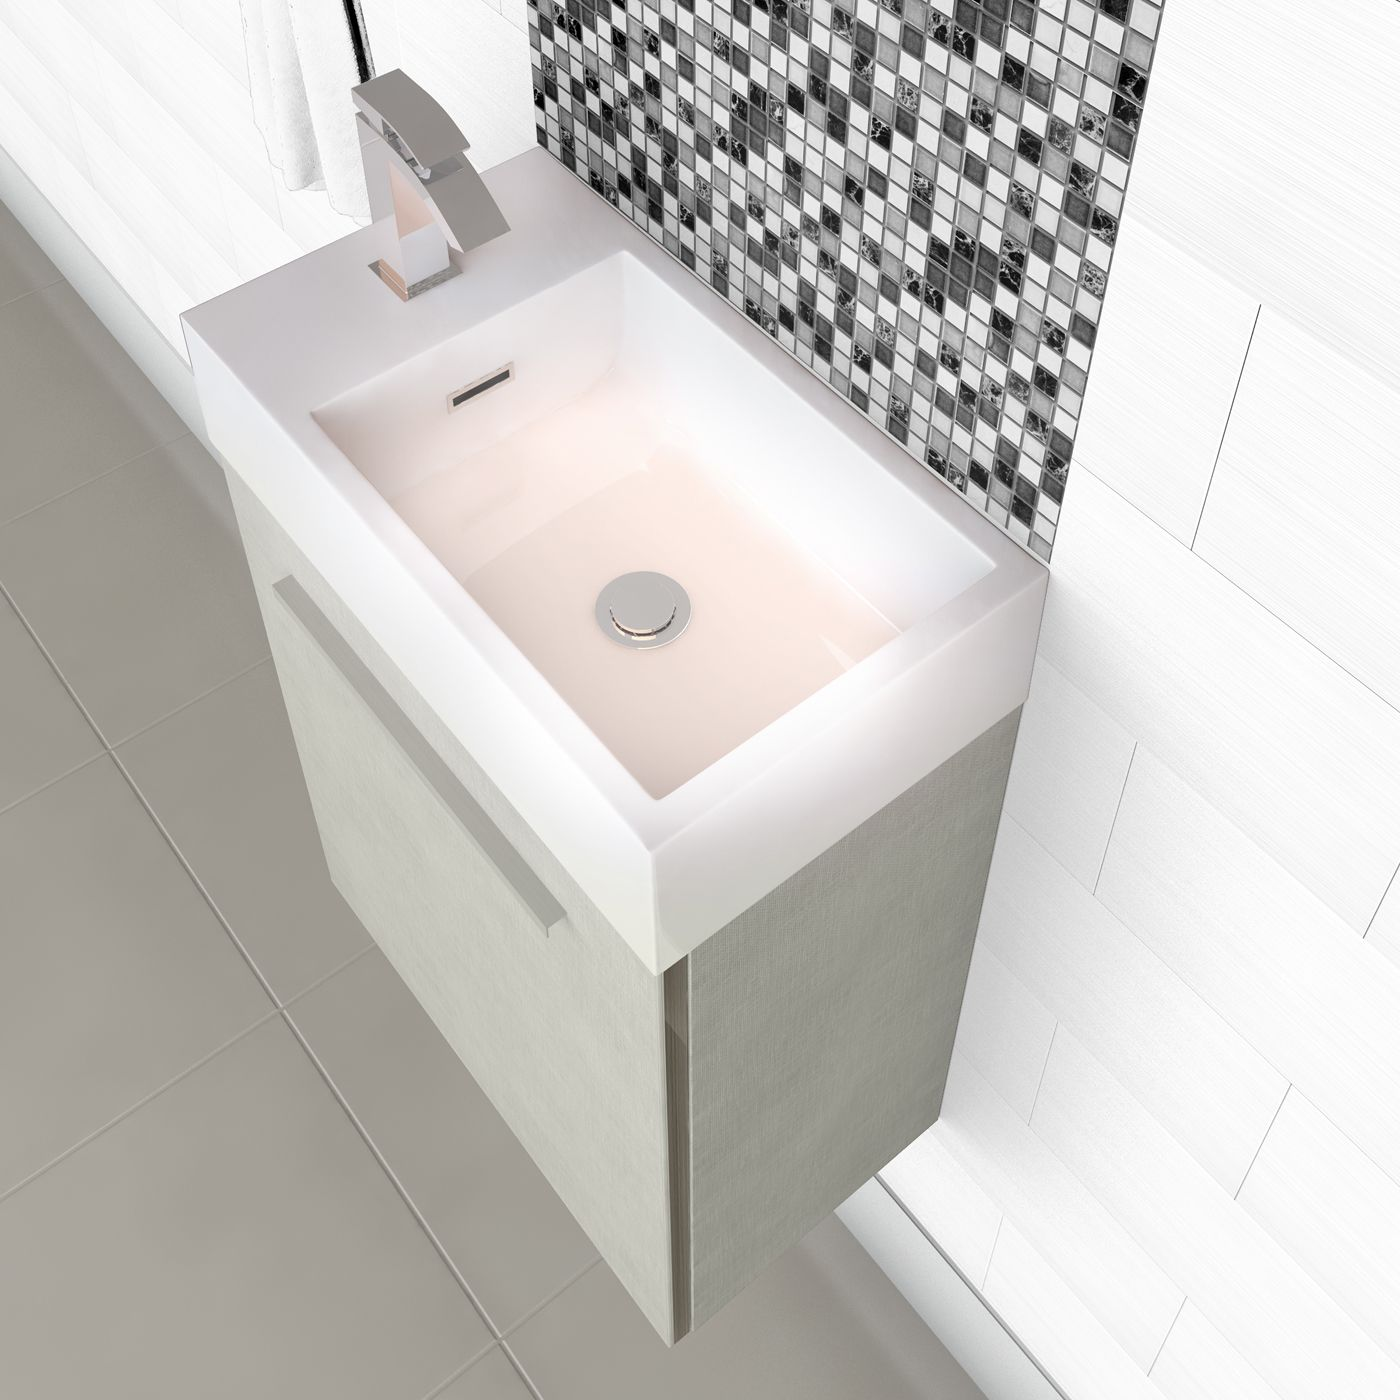 sink kitchen and silhouette single ideas motif image kbcawtcarr katherine beautiful vanity cutler collection bath best